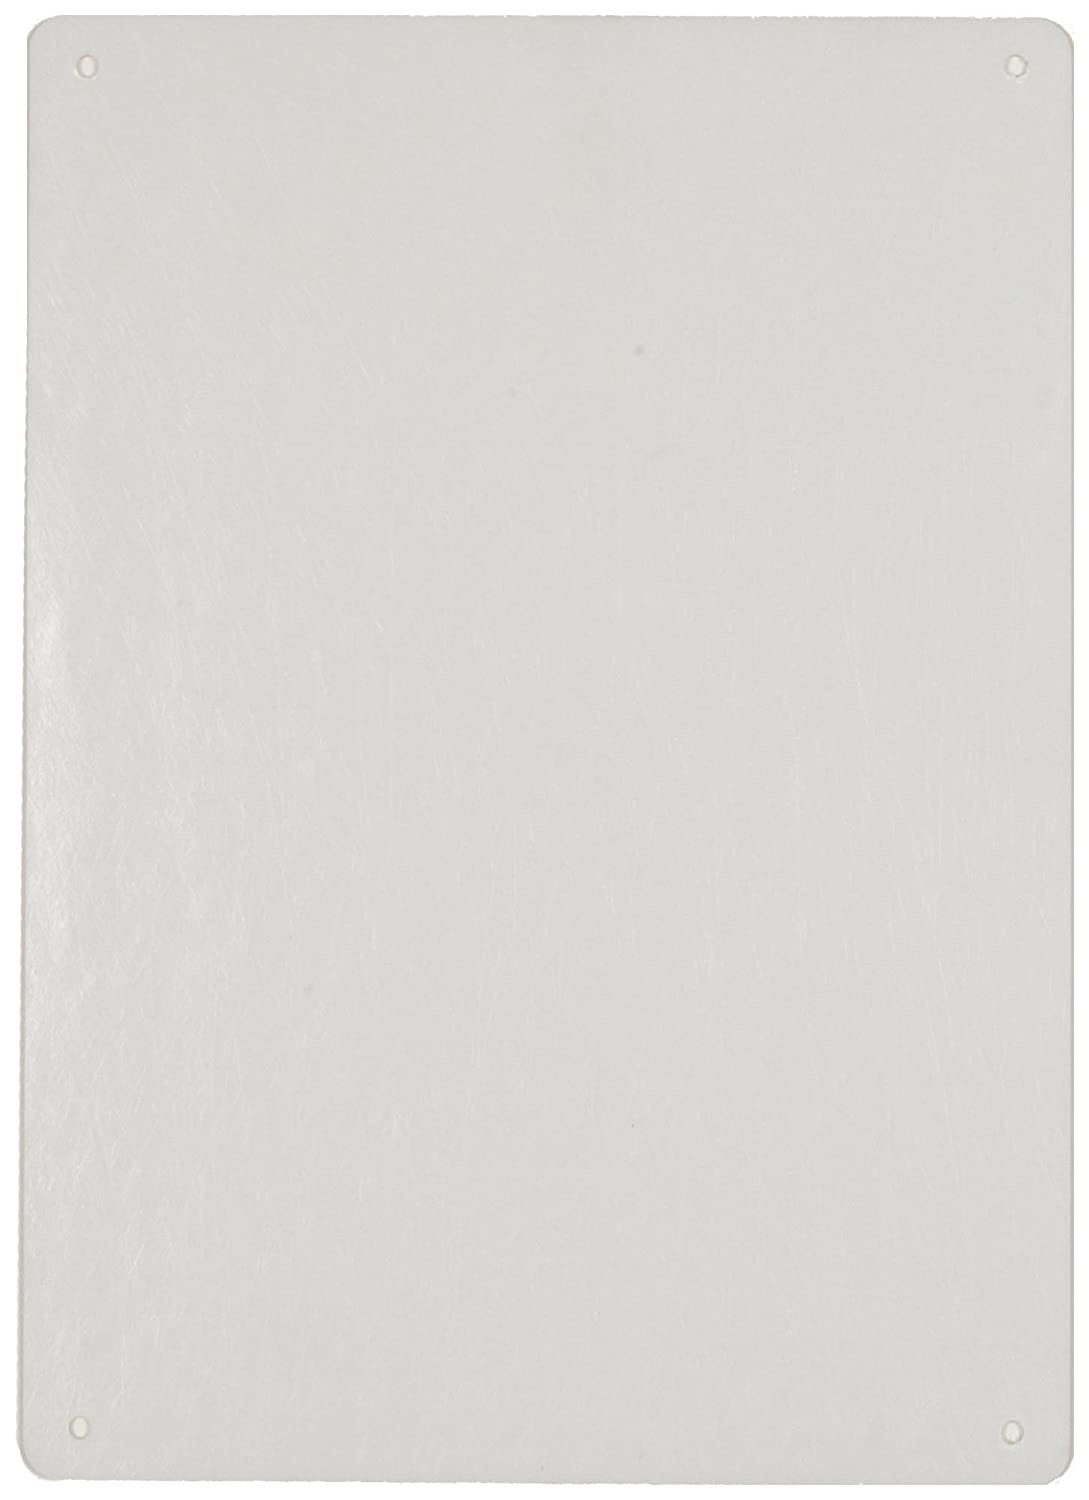 14 Width Brady 25377 10 Height White Color Blank Sign B-401 Plastic